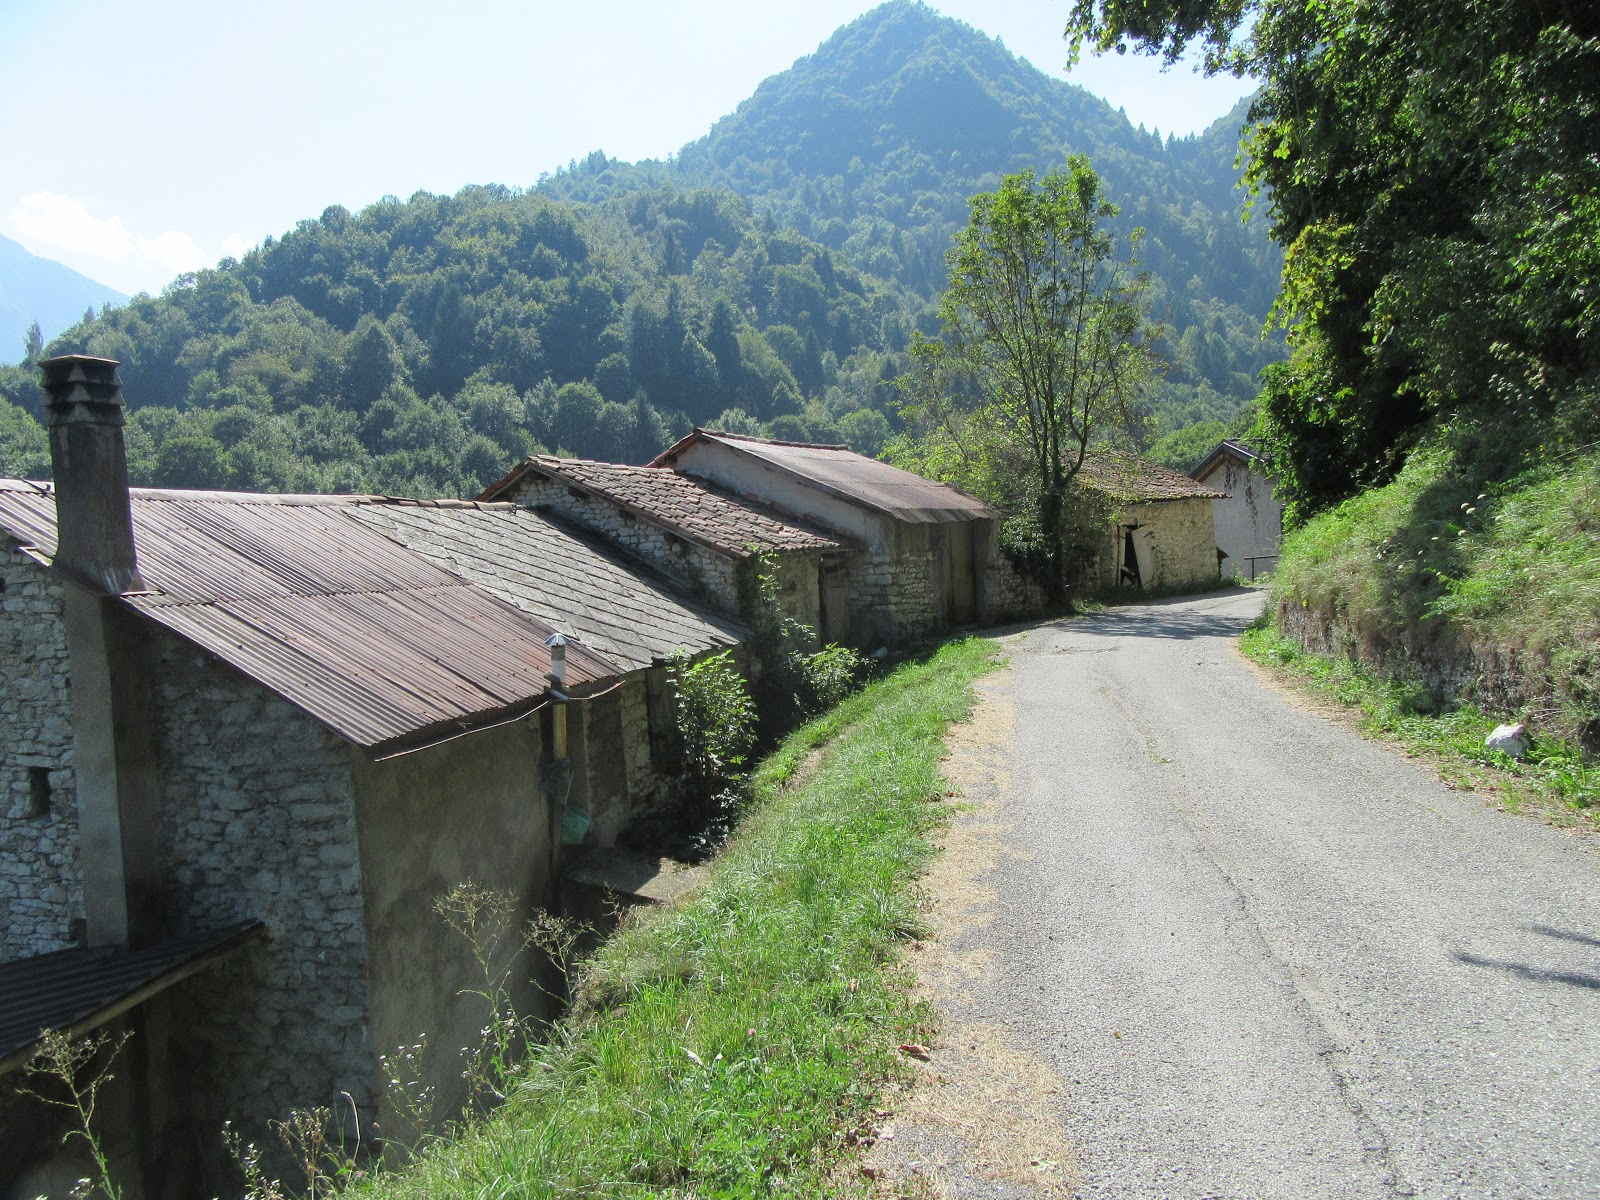 Biking up Monte Grappa from Seren - road and old buildings with mountains in background